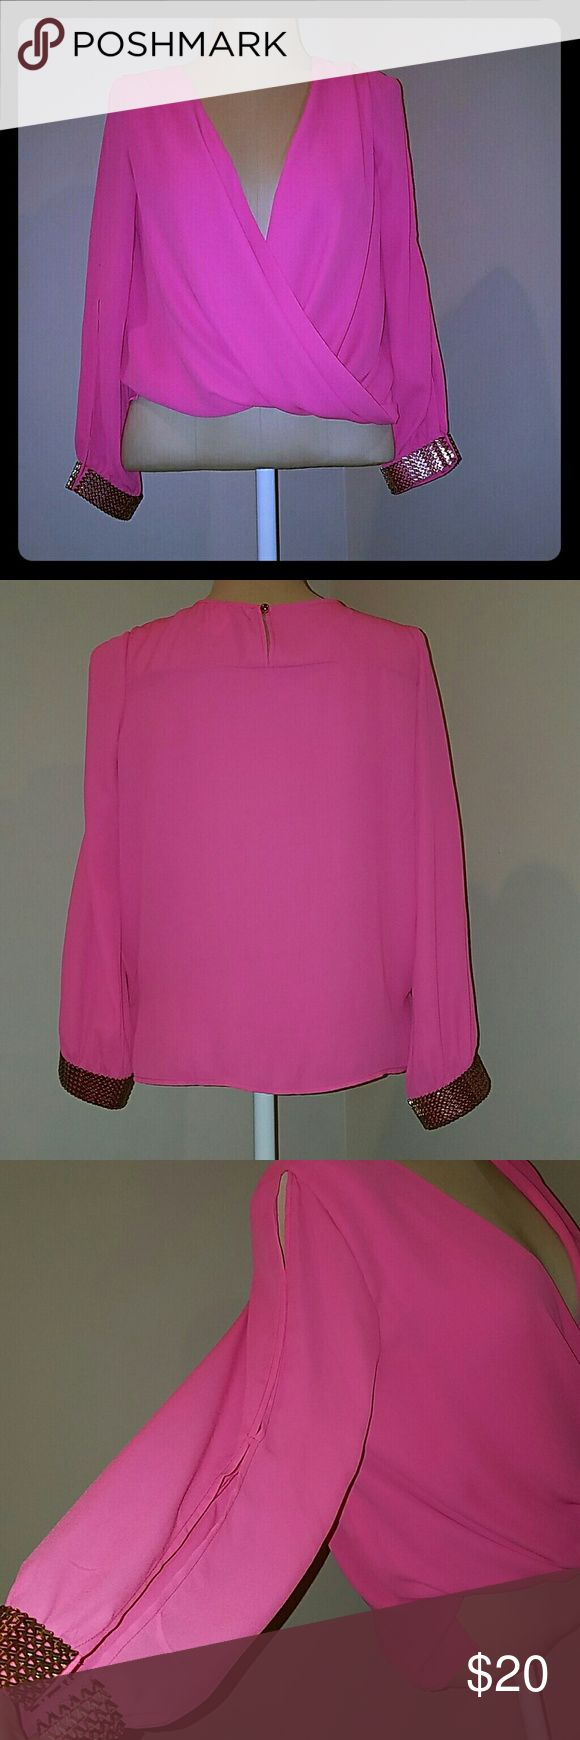 Hot pink blouse w/ gold sleeve accents Agaci hot pink long sleeves with skits  (see 3rd pic). Can be worn open as shown in 1st pic or buttoned in front as shown in last pic. Only worn once for about 2 hrs. a'gaci Tops Blouses